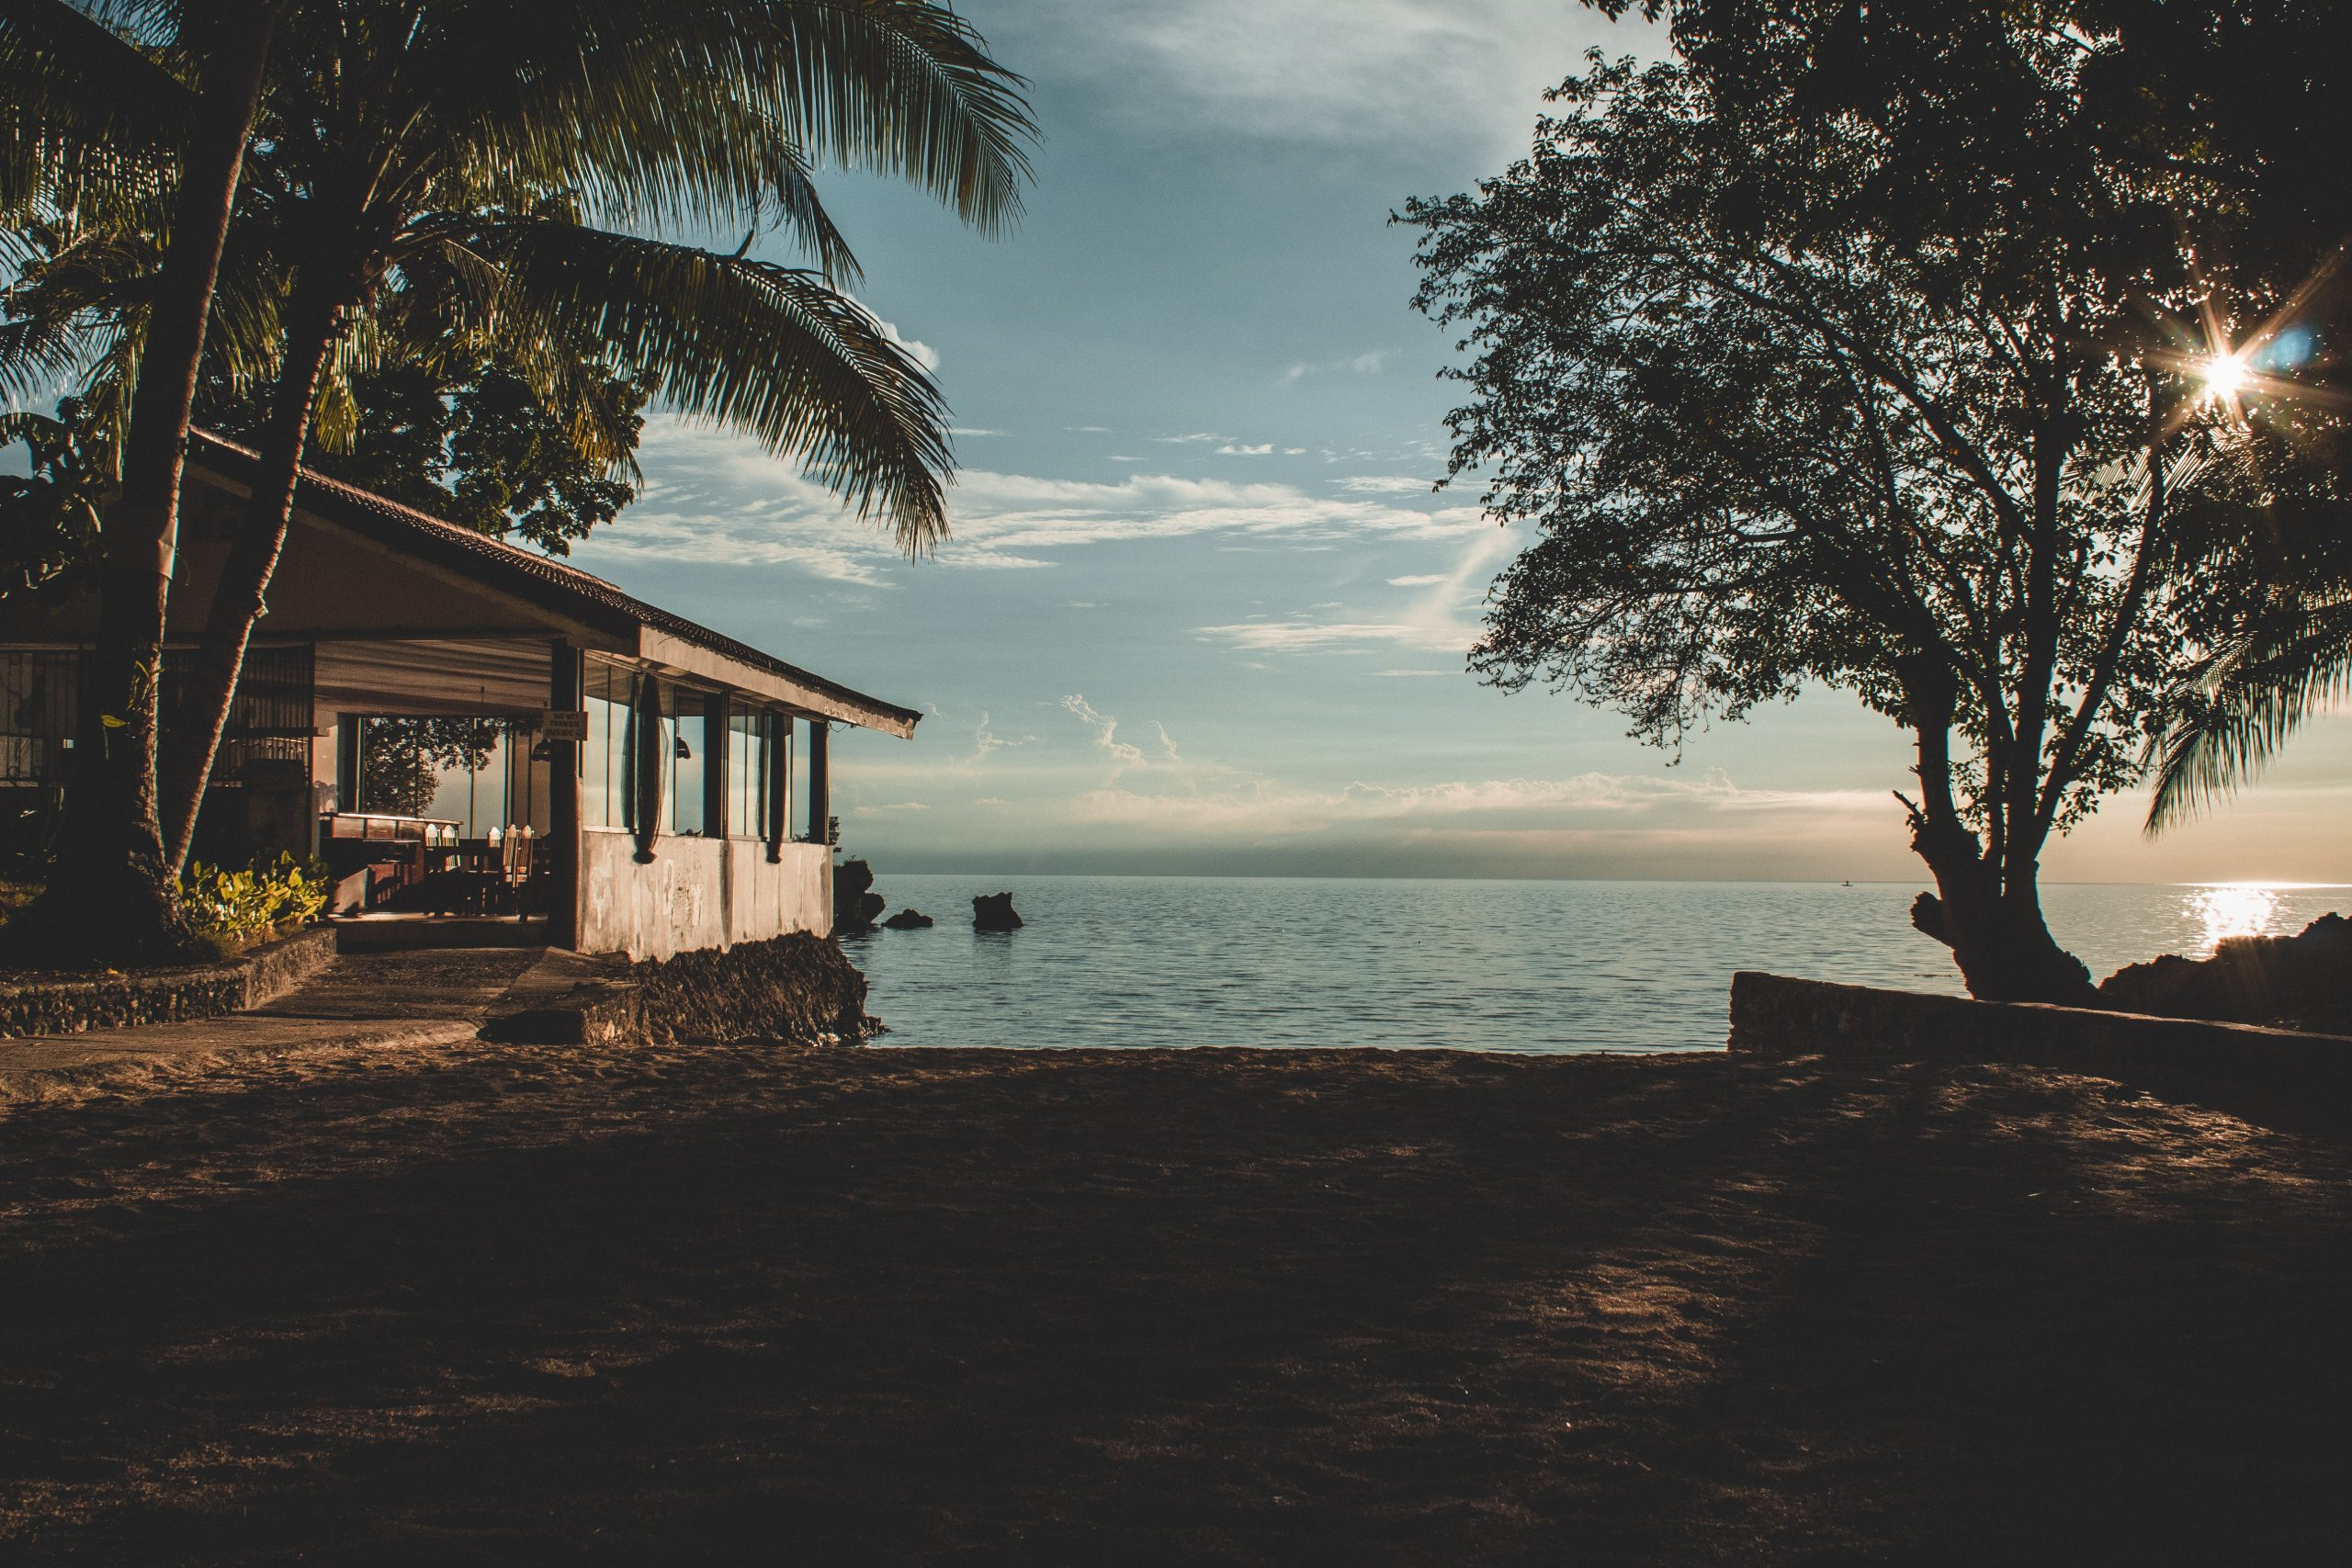 5 tips when looking to buy a vacation home abroad